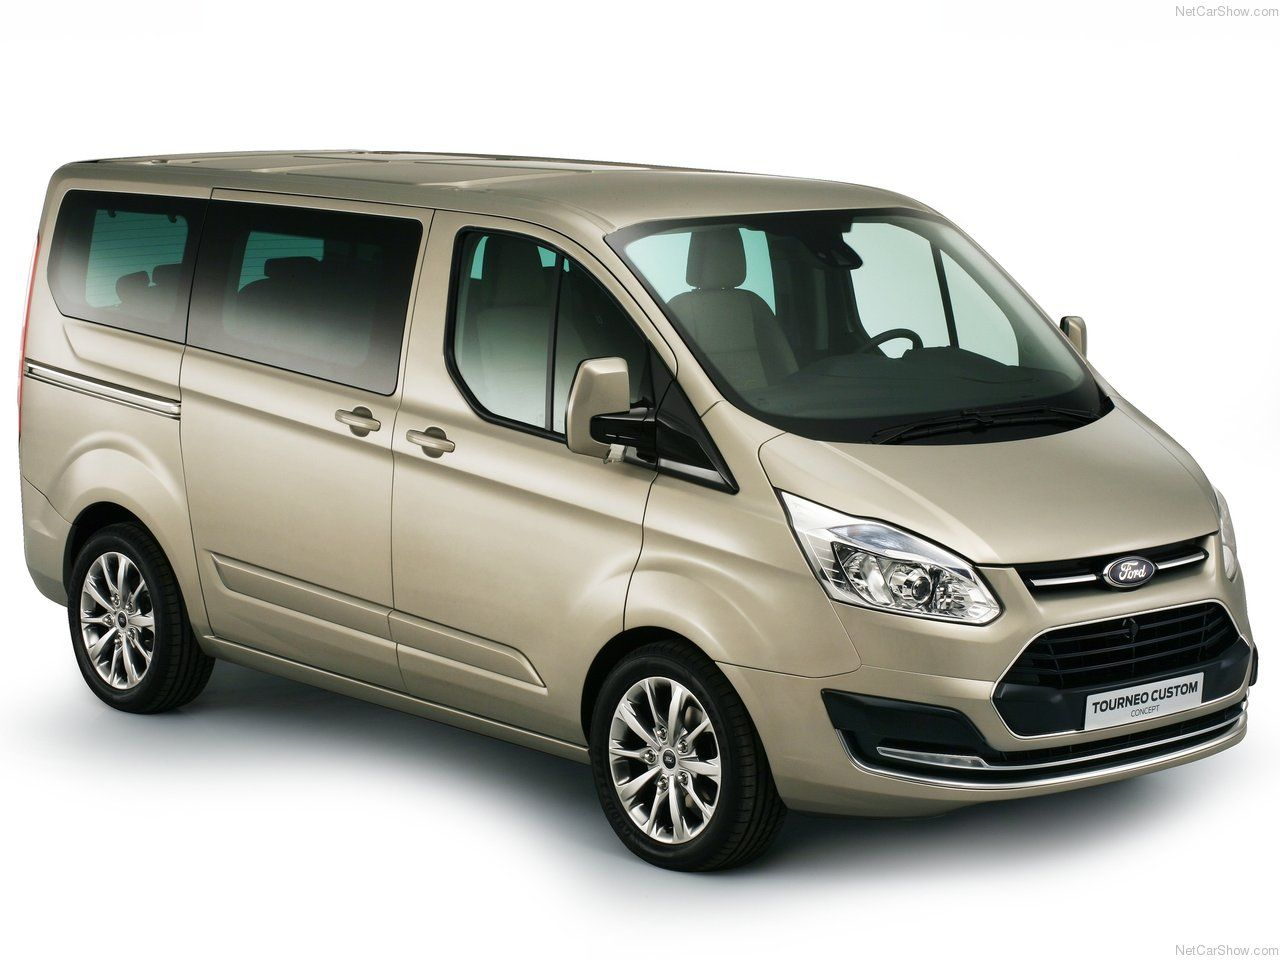 Our Brand New Latest Addition The Fleet Ford Transit Car Rental Company Mini Bus